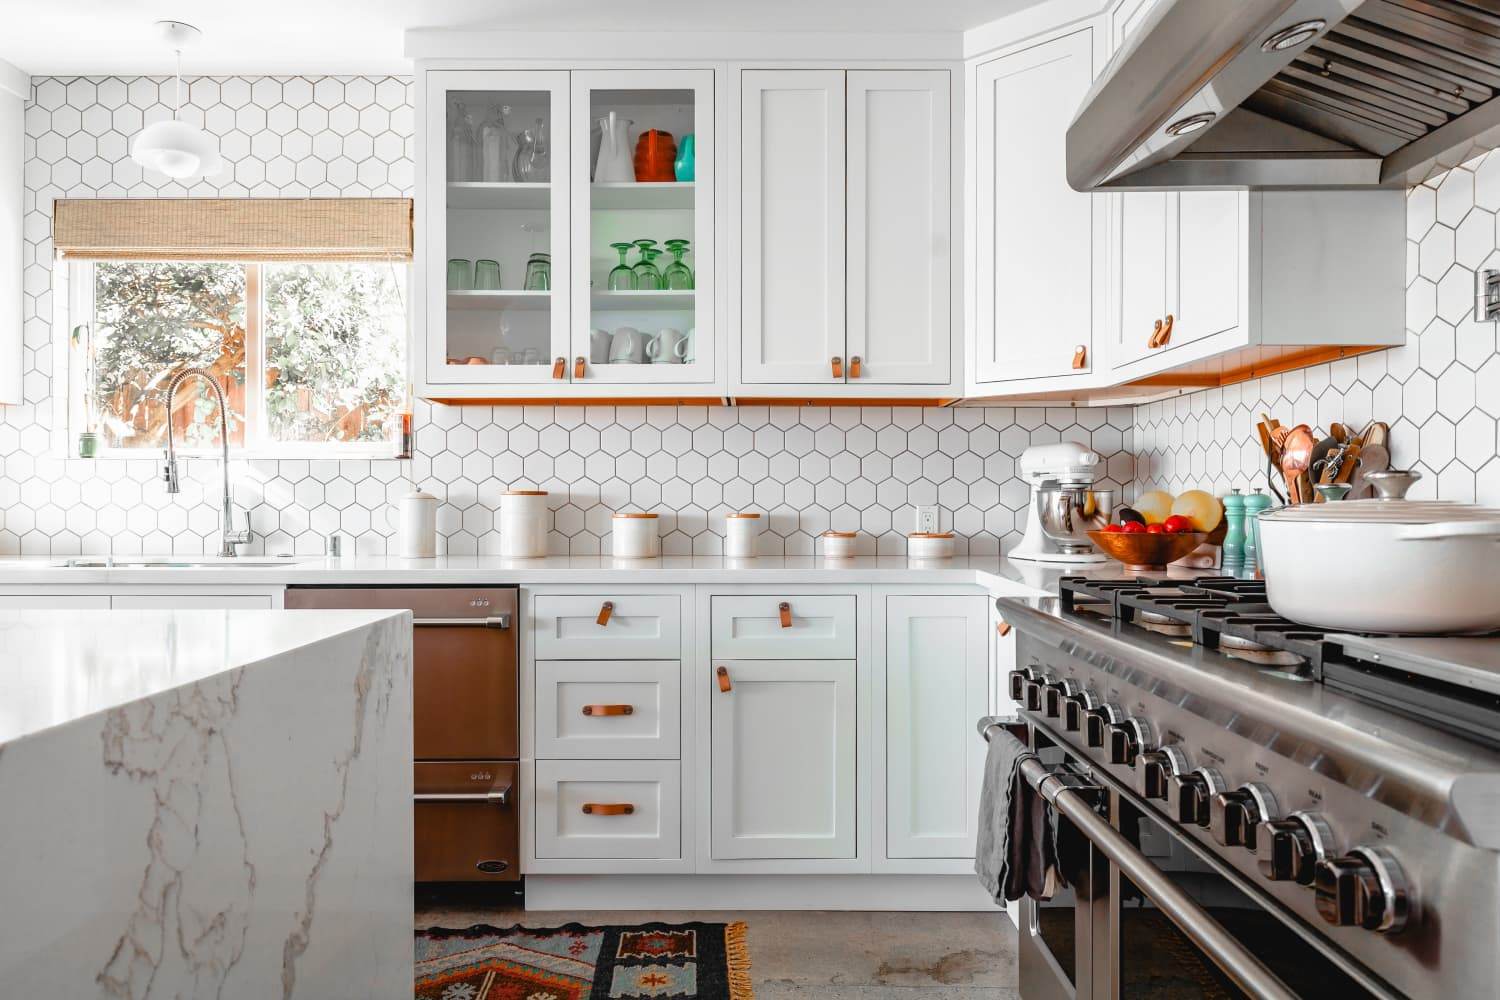 9 Things Pros Would Never Pay for in Their Own Kitchen Remodel